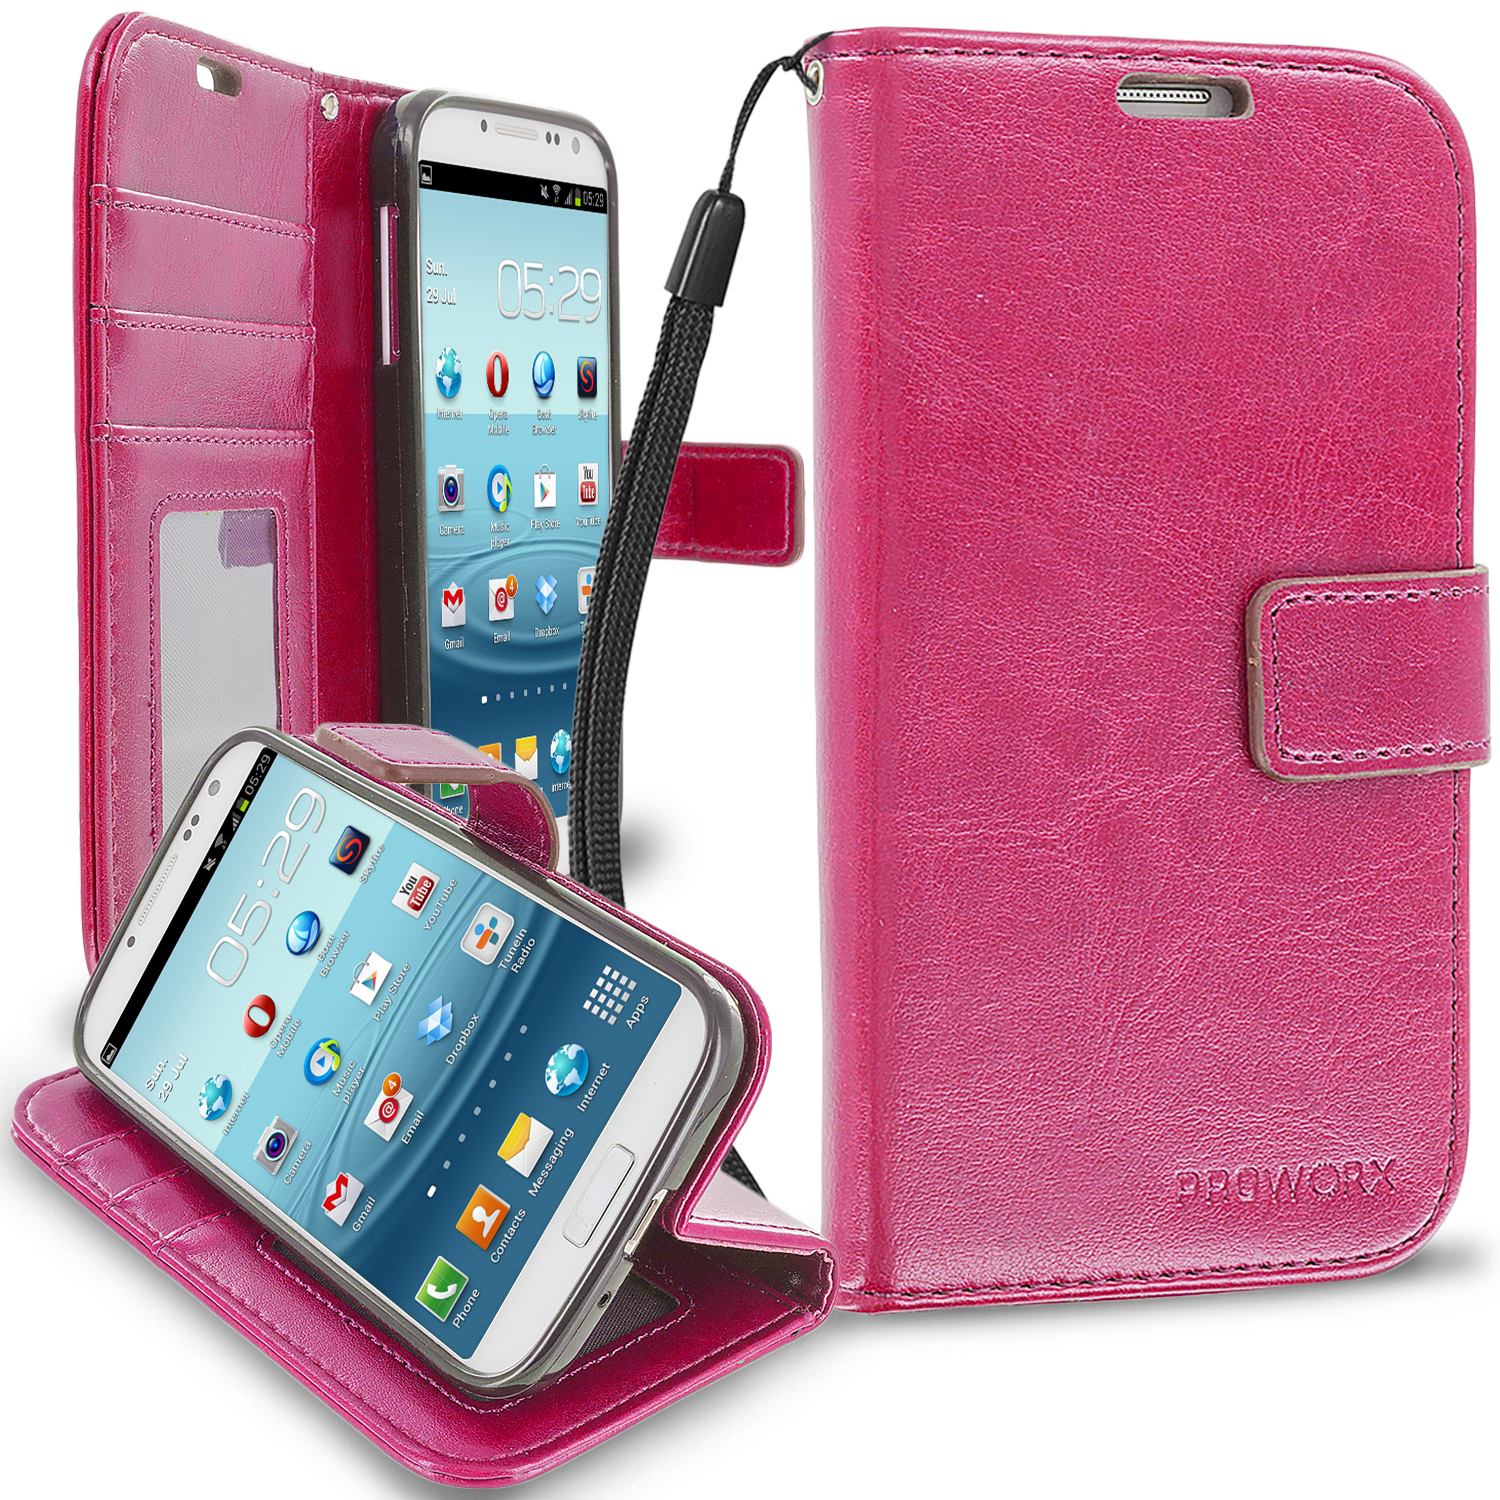 Samsung Galaxy S4 Hot Pink ProWorx Wallet Case Luxury PU Leather Case Cover With Card Slots & Stand